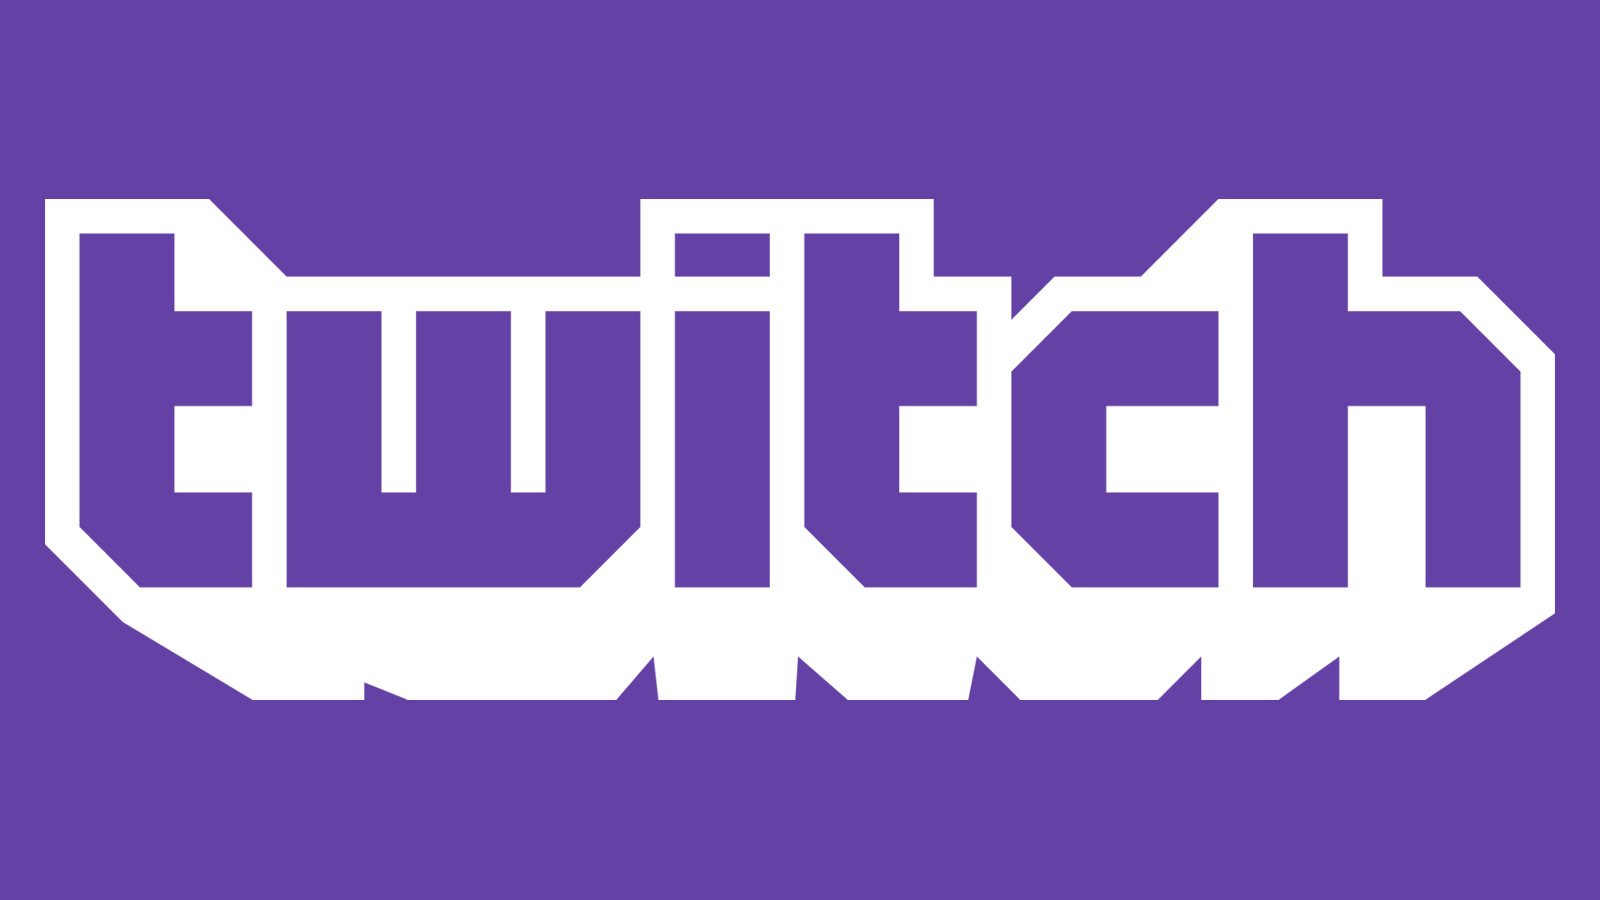 Twitch's iOS app introduces audio-only mode